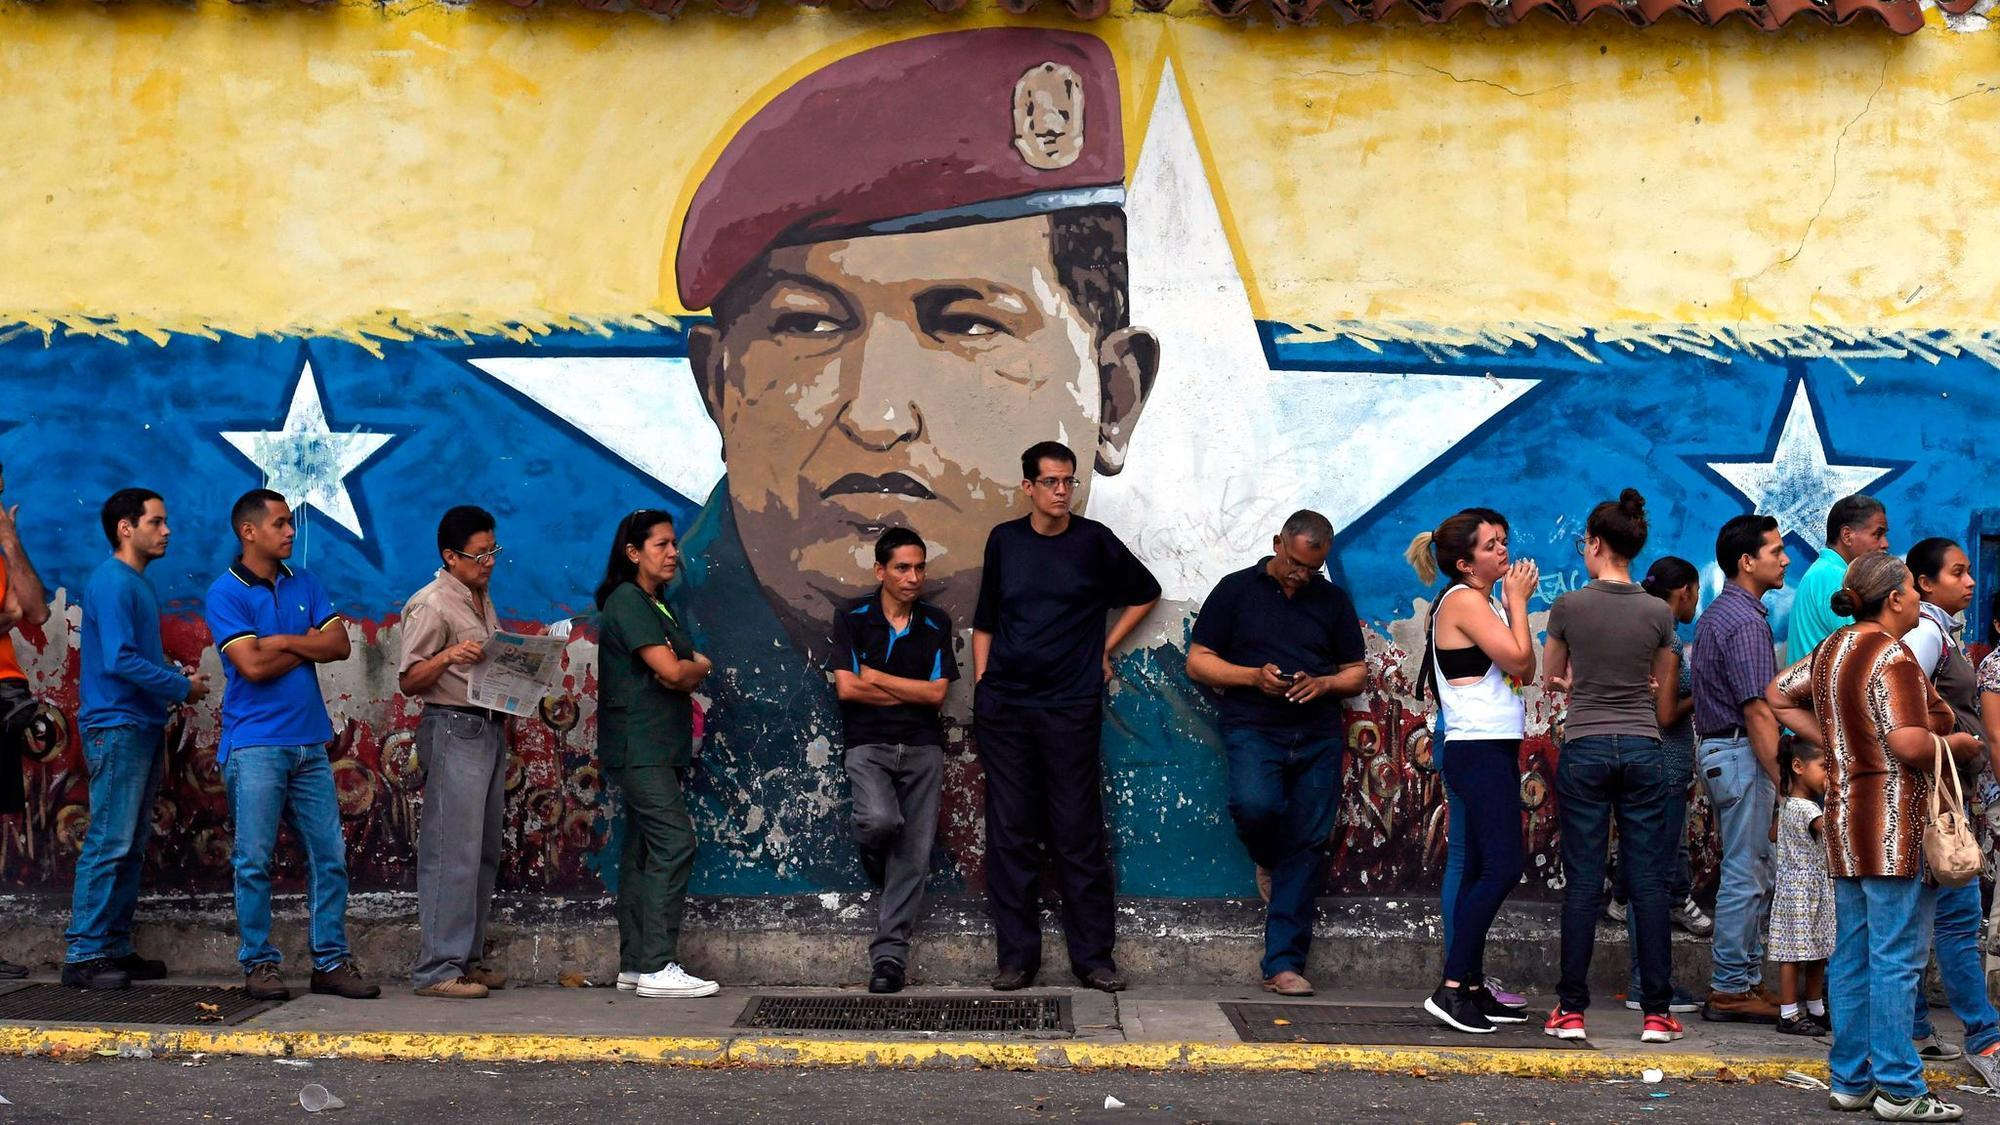 Pro-government candidates dominate Venezuelan election; opposition cries foul